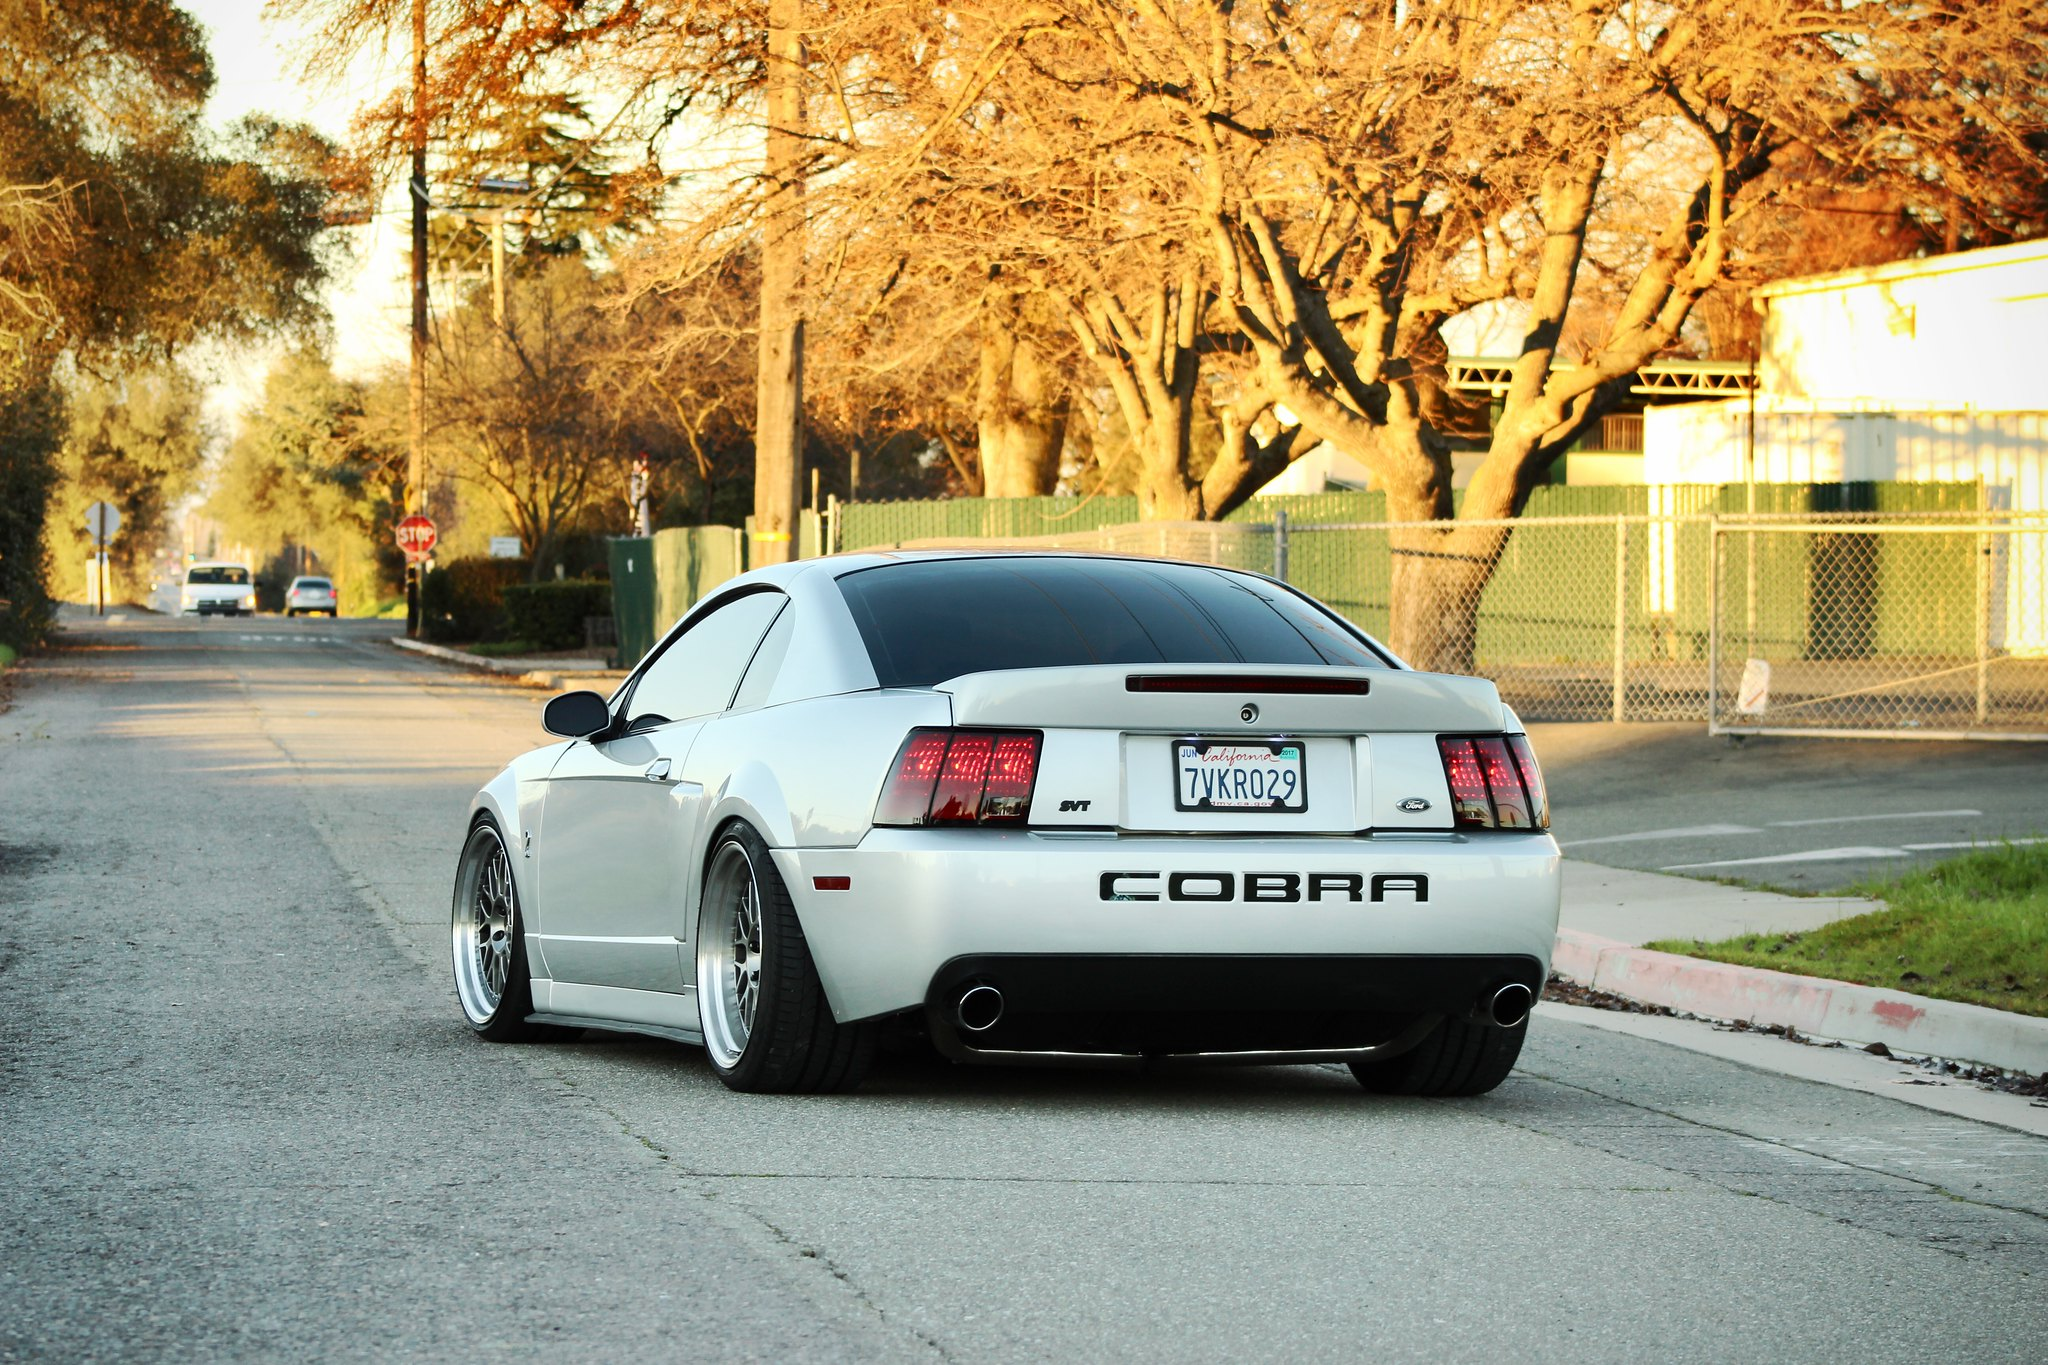 Slammed Cobra Pictures to Pin on Pinterest - PinsDaddy